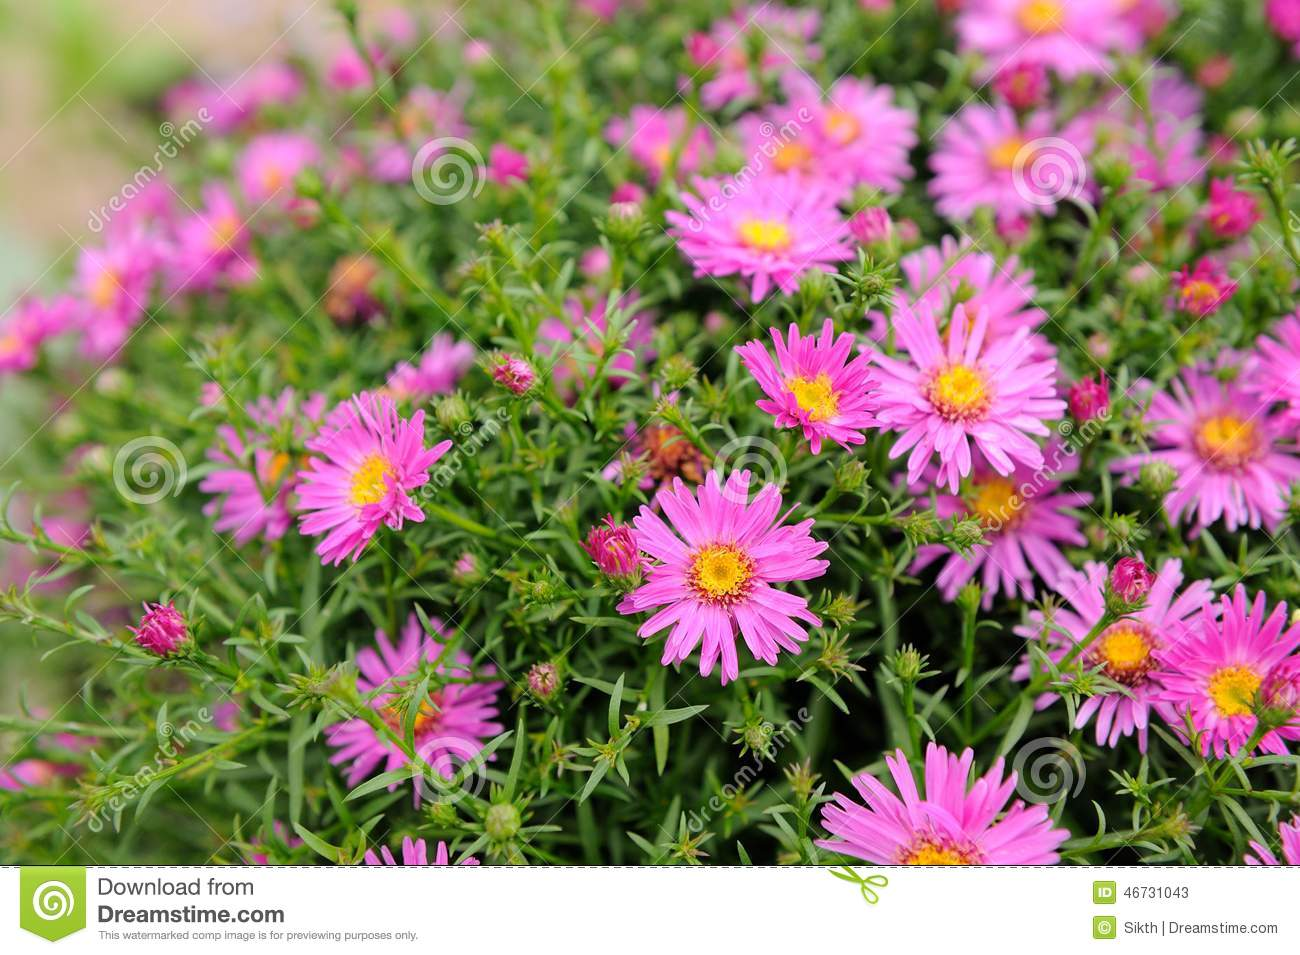 pink new york aster flowers stock photo  image, Beautiful flower